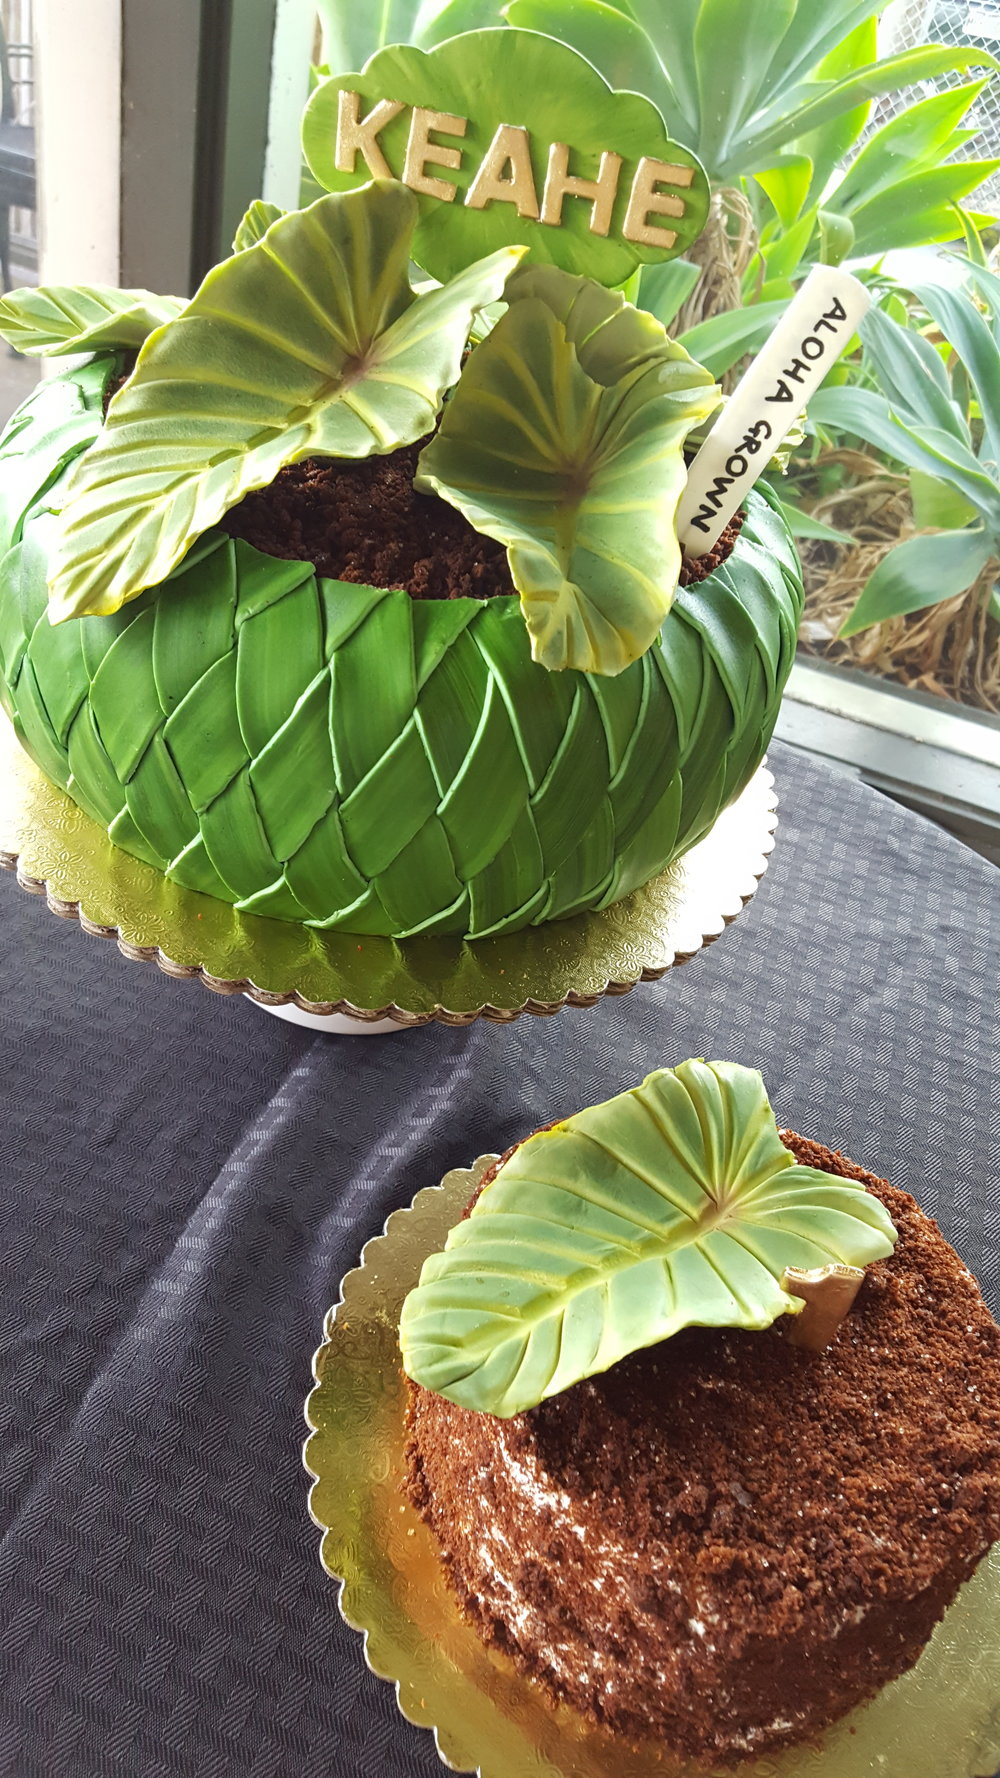 Copy of sculpted woven rolled fondant basket birthday cake with sugar taro (kalo) Hilo Hawaii Big Island Kailua-Kona